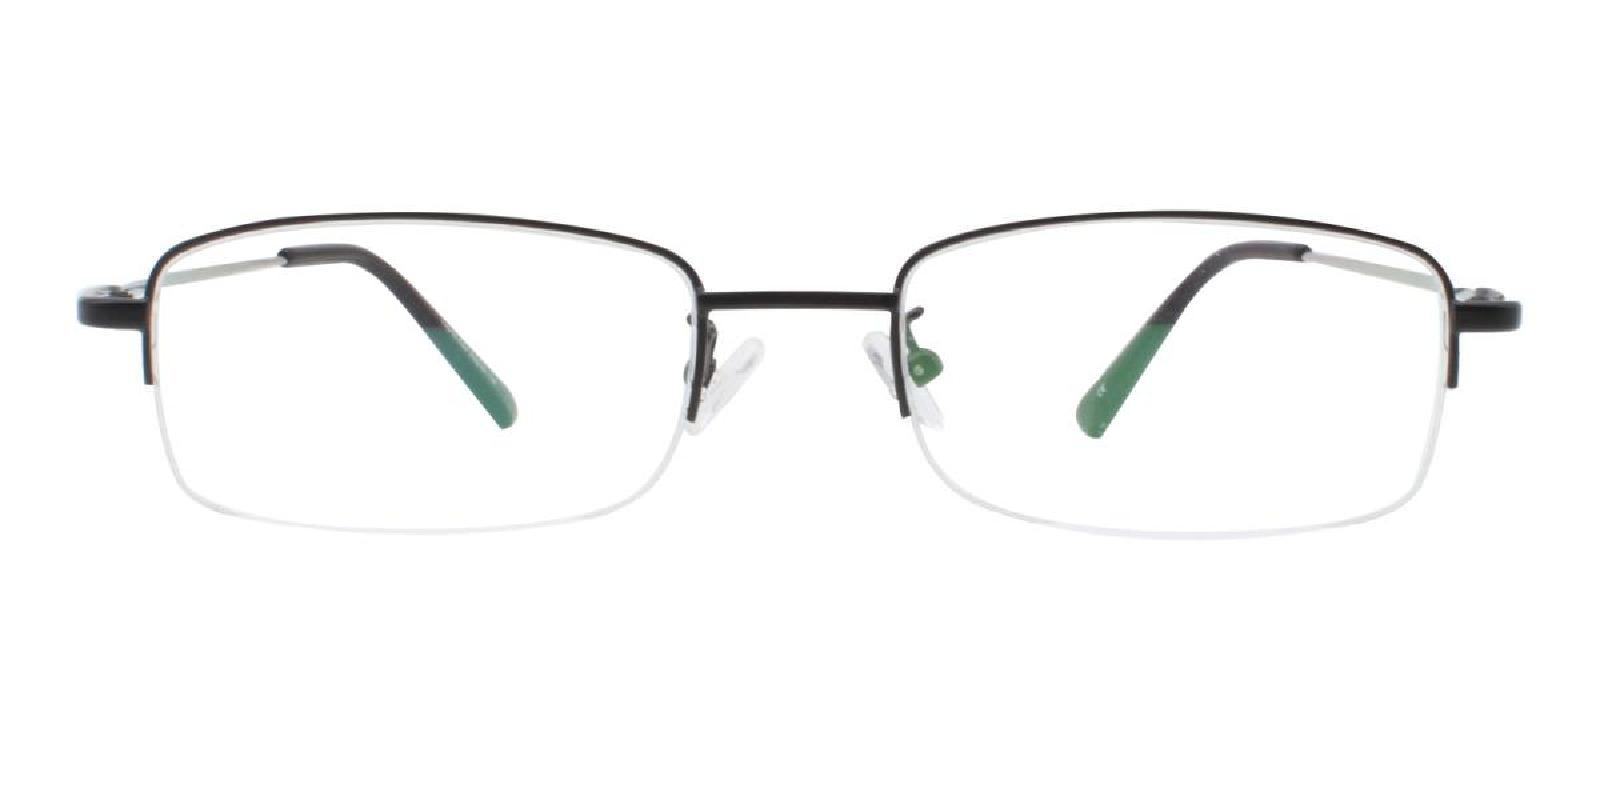 Limboda-Black-Rectangle-Metal-Eyeglasses-additional2